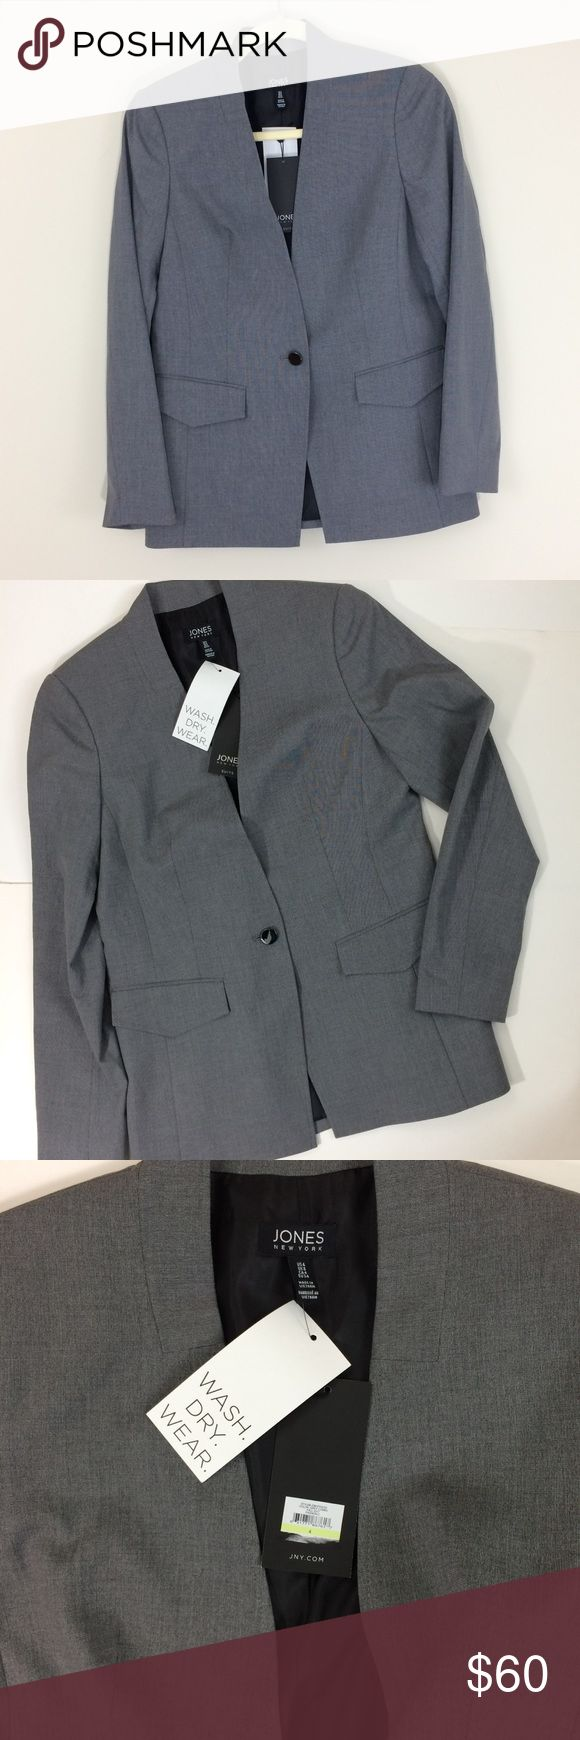 🆕Jones New York Gray Suit Jacket Wash. Dry. Wear. No dry cleaners bills! Great suit jacket with 1 button closure. Fully lined. Very versatile. Wear it with jeans for a casual look or pair it up with a skirt or dress pants for a more professional look. Great  staple to add to your closet. Have a question leave it in the comments. Jones New York Jackets & Coats